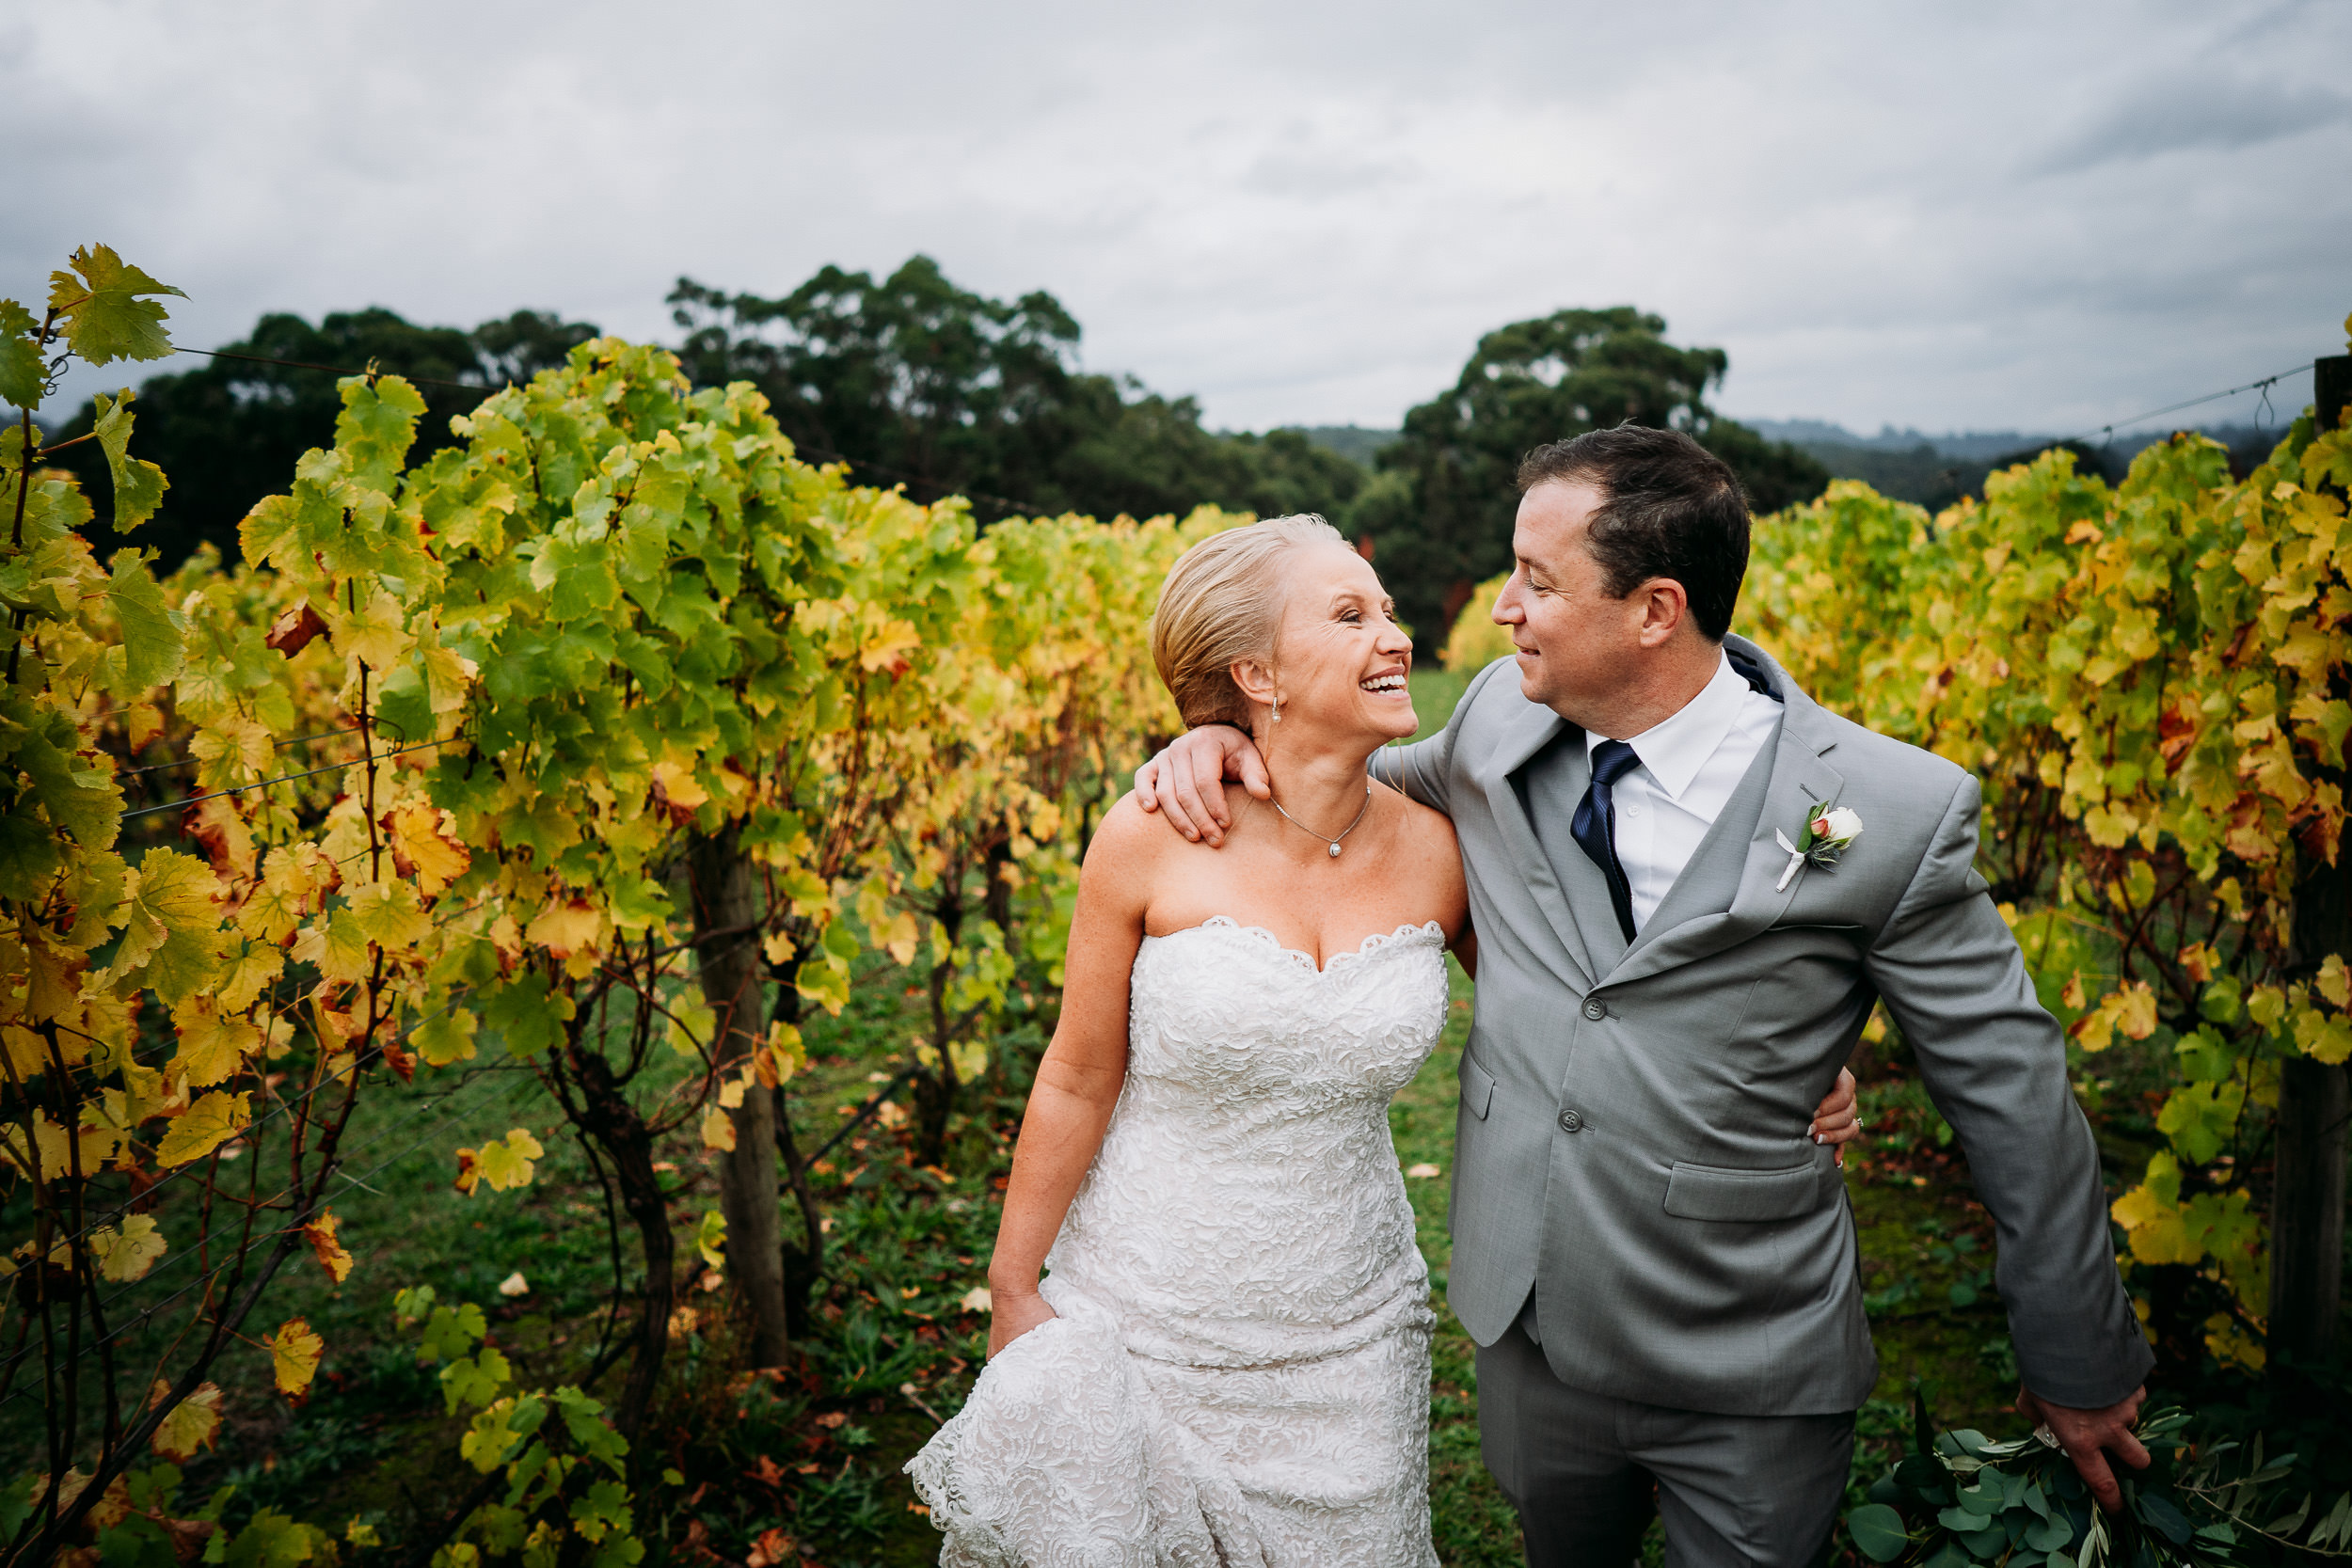 Yarra-Ranges-Estate-Wedding-1012.jpg